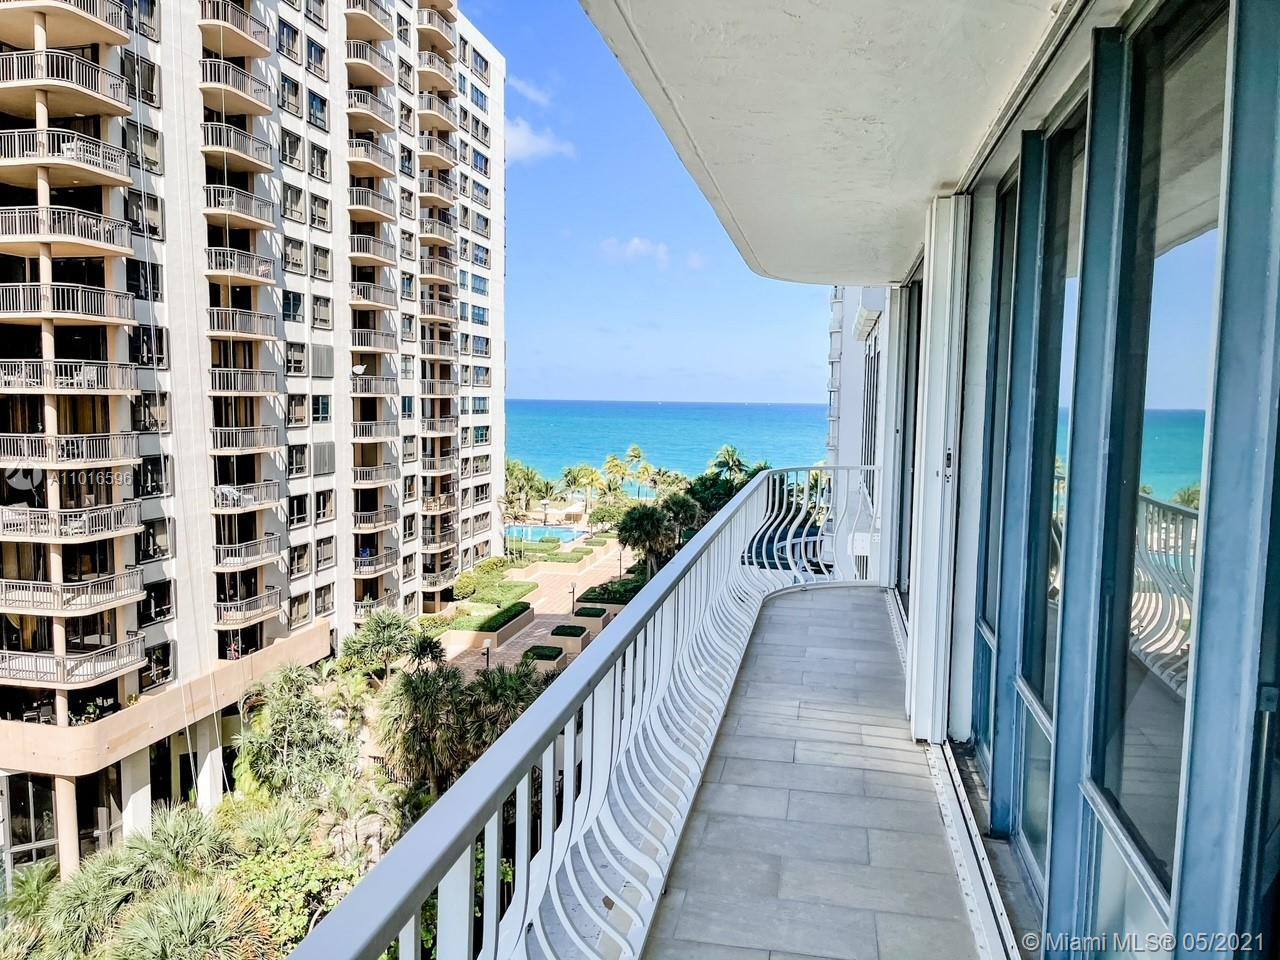 Beautiful corner unit apartment located on the beautiful 101 Bal Harbour building. Apartment overlooks the intracoastal, the city and partial views of the ocean. Resort style living! This impressive apt includes state of the art kitchen with natural light and top of the line appliances, marble floors throughout, huge master suite with 2 master bathrooms, 2 walk-in closets, and wrap around balcony. Office, storage and eat in kitchen, huge rooms. This prestigious building recently had a complete renovation and offers excellent amenities such as on site restaurant, fitness club, valet, party room and beach and pool service, hotel rooms for your guests. The building is located within walking distance from the Bal Harbor Shops with great shopping and outdoor dining options. SOLD AS IS